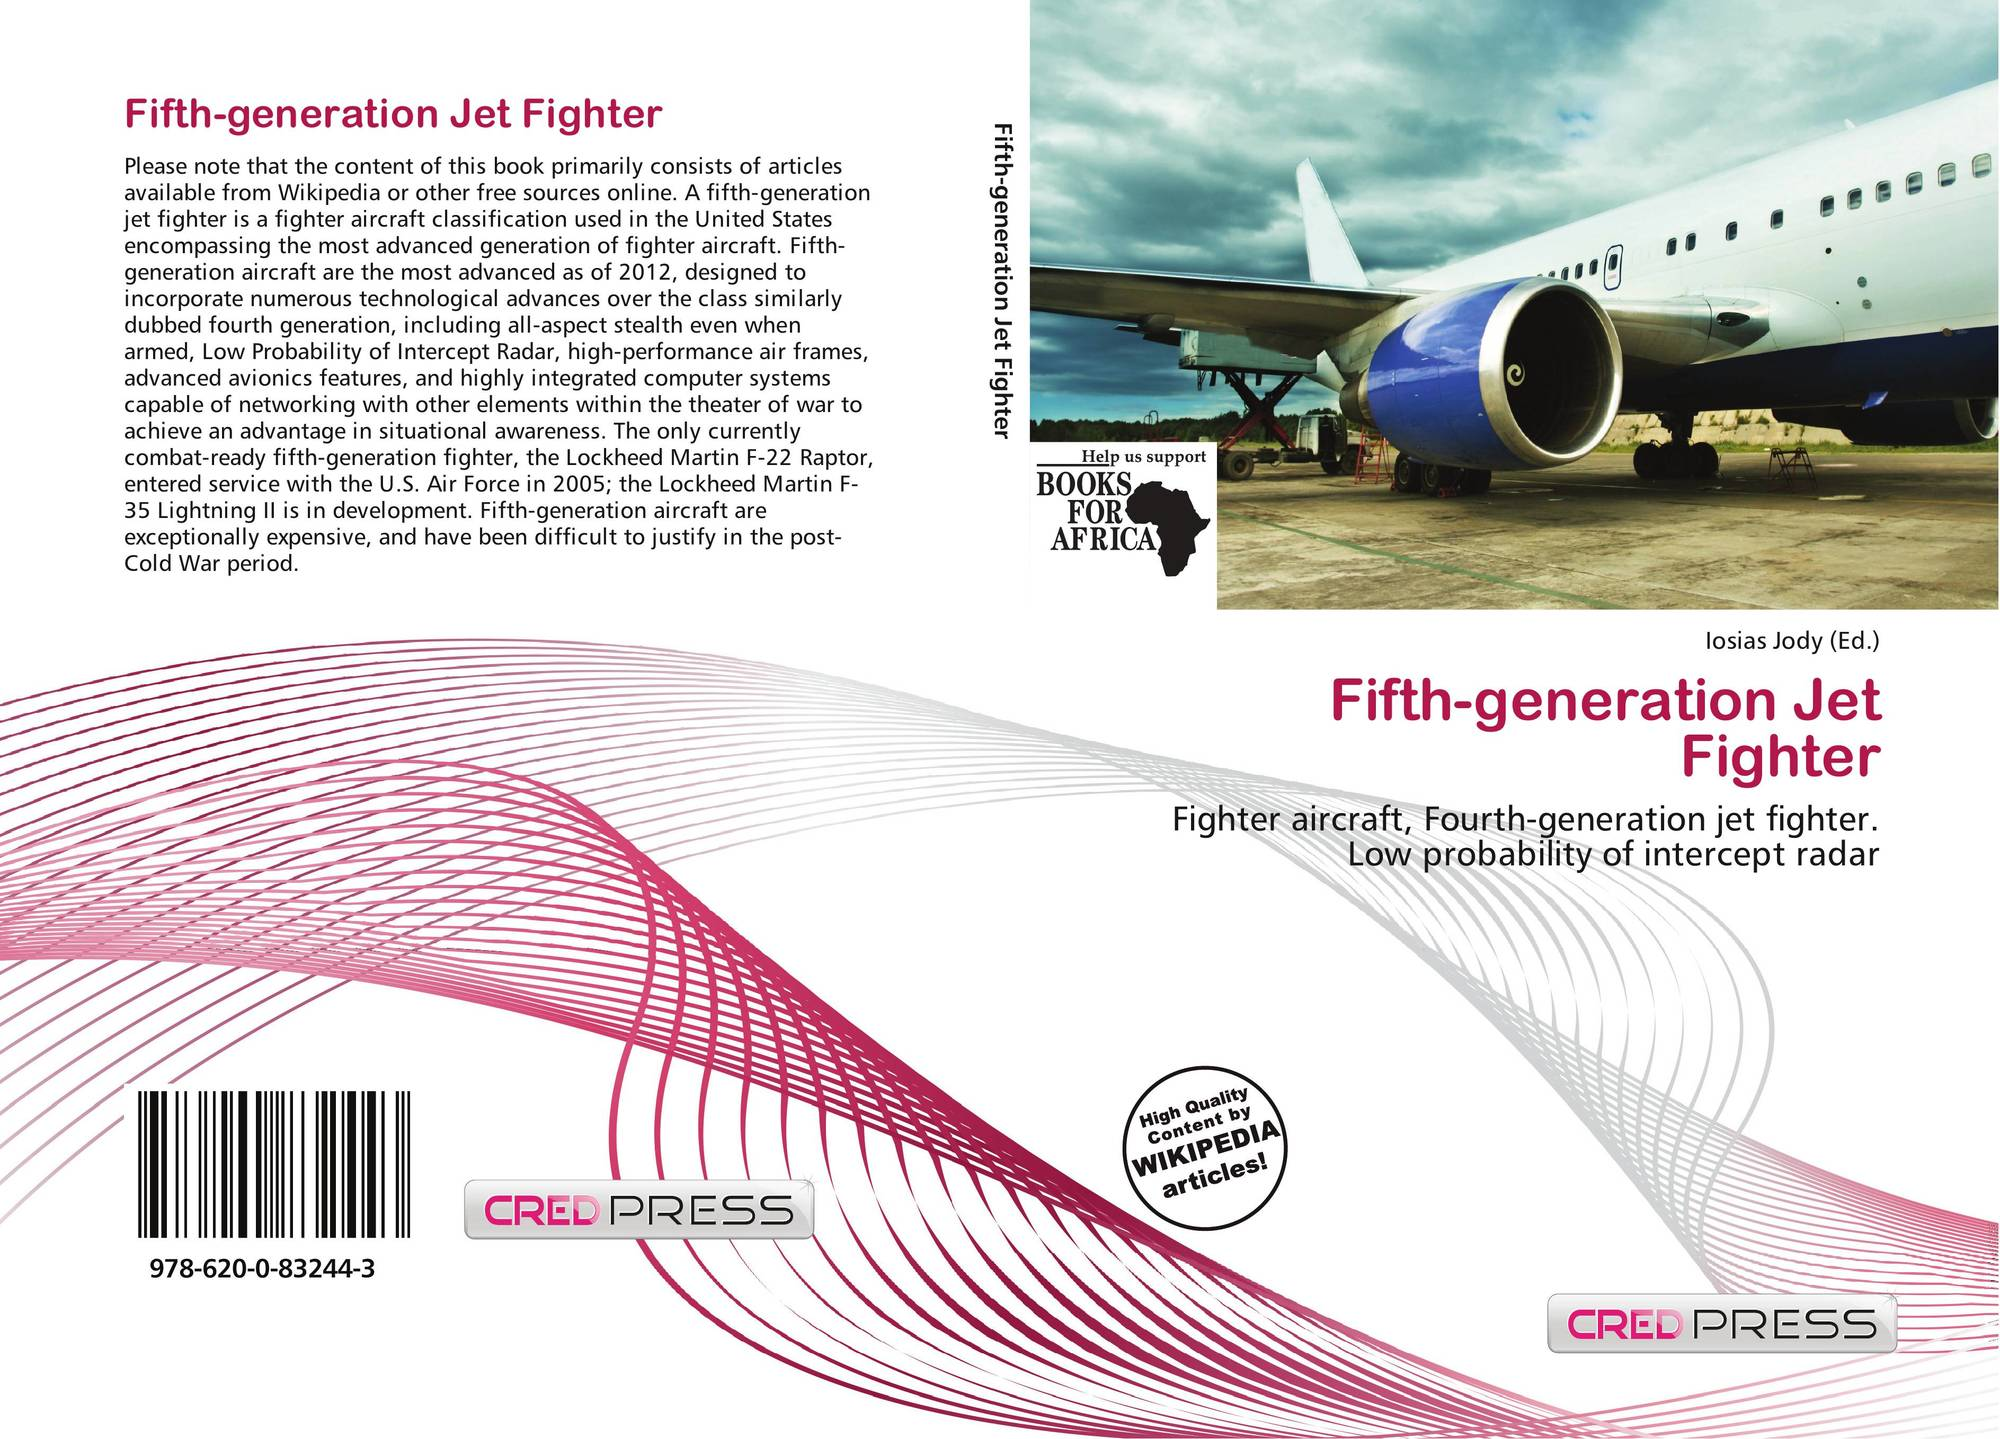 Fifth-generation Jet Fighter, 978-620-0-83244-3, 6200832447